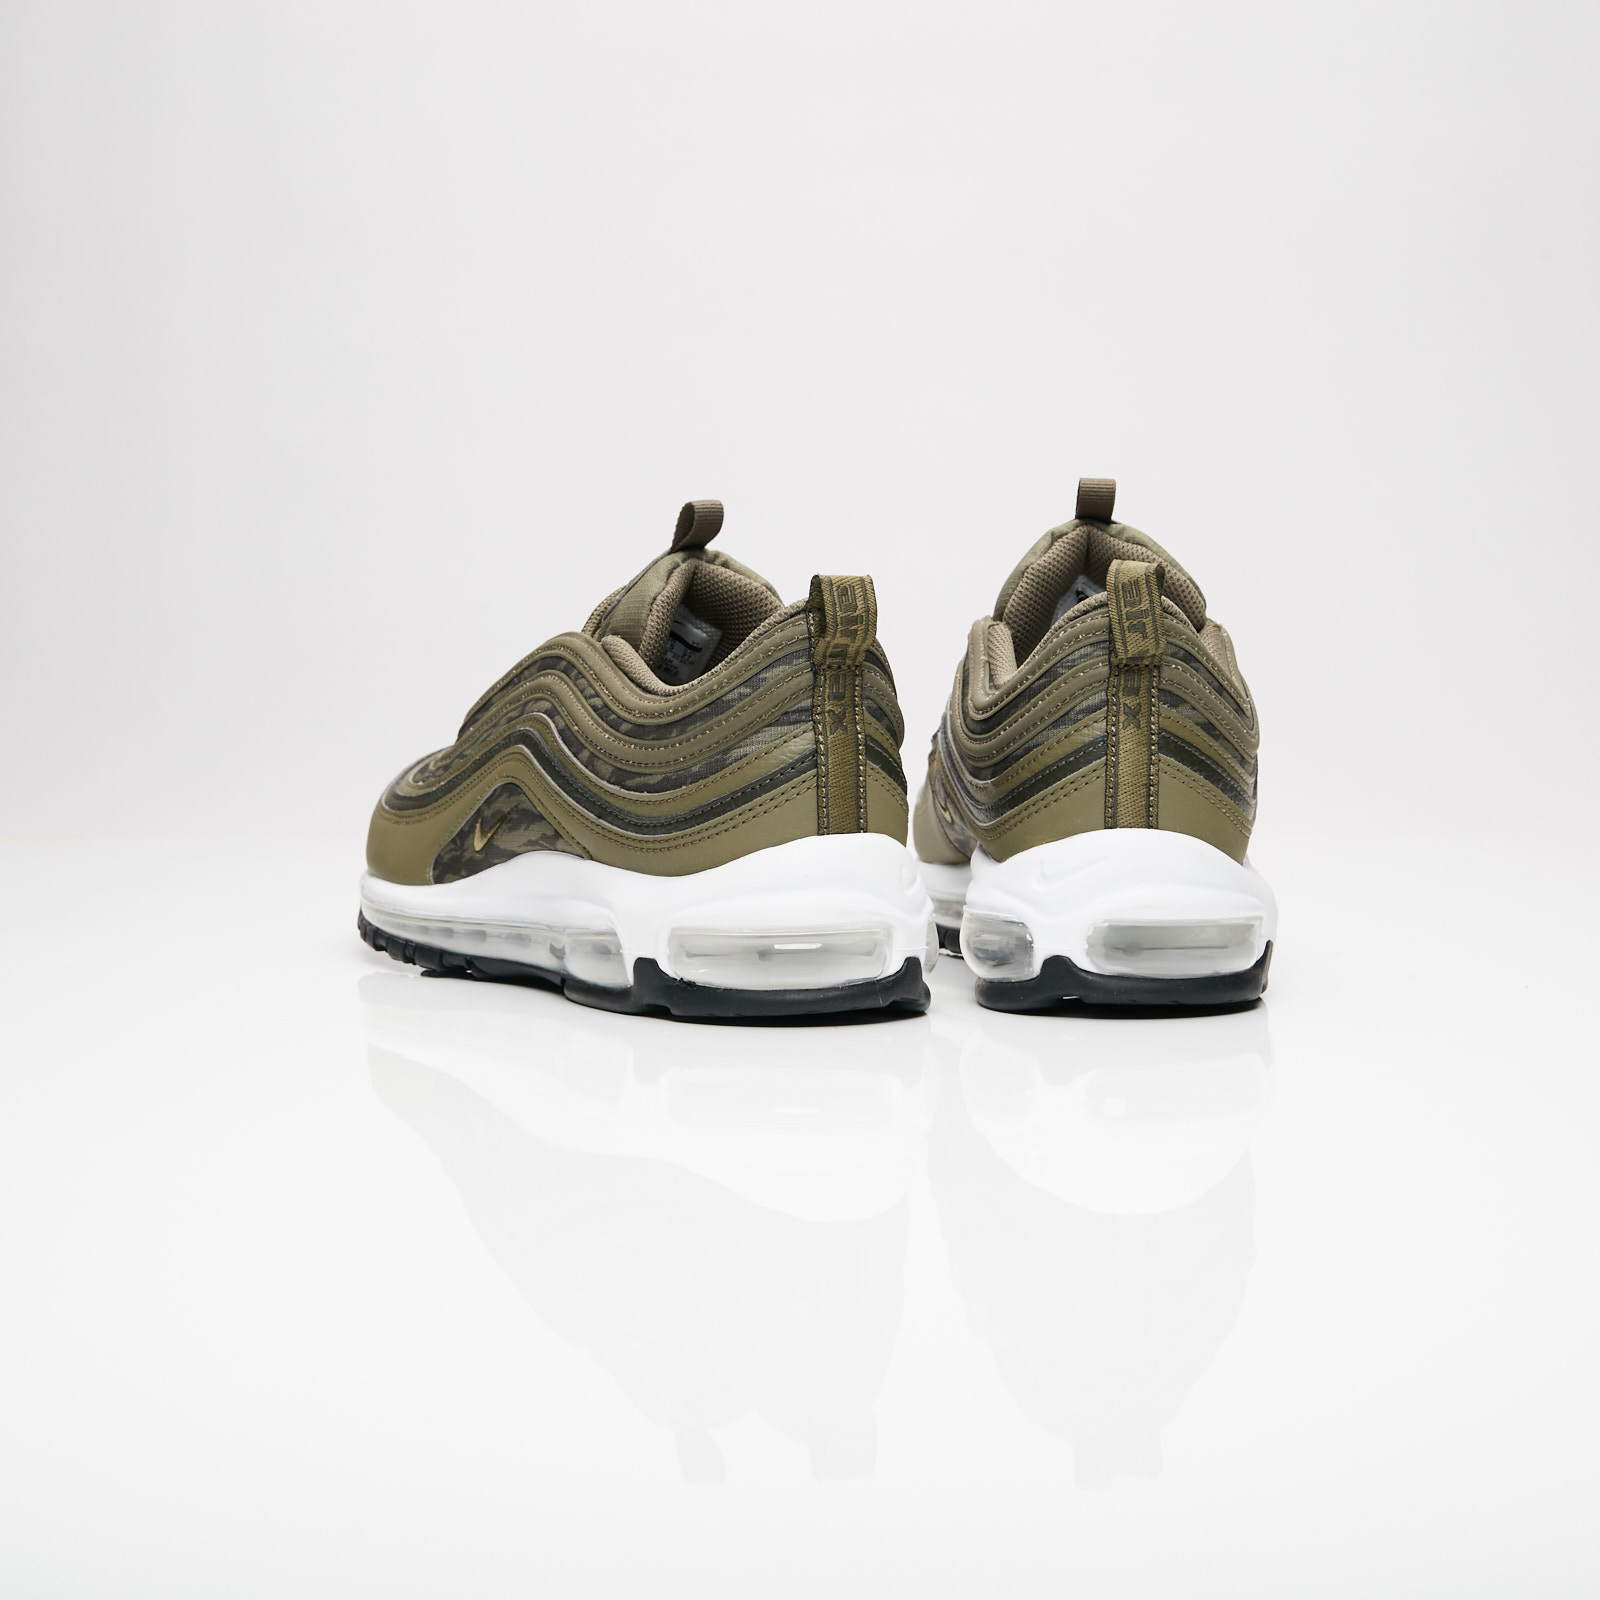 low priced c09be c3ddf Nike Air Max 97 AOP - Aq4132-200 - Sneakersnstuff | sneakers ...